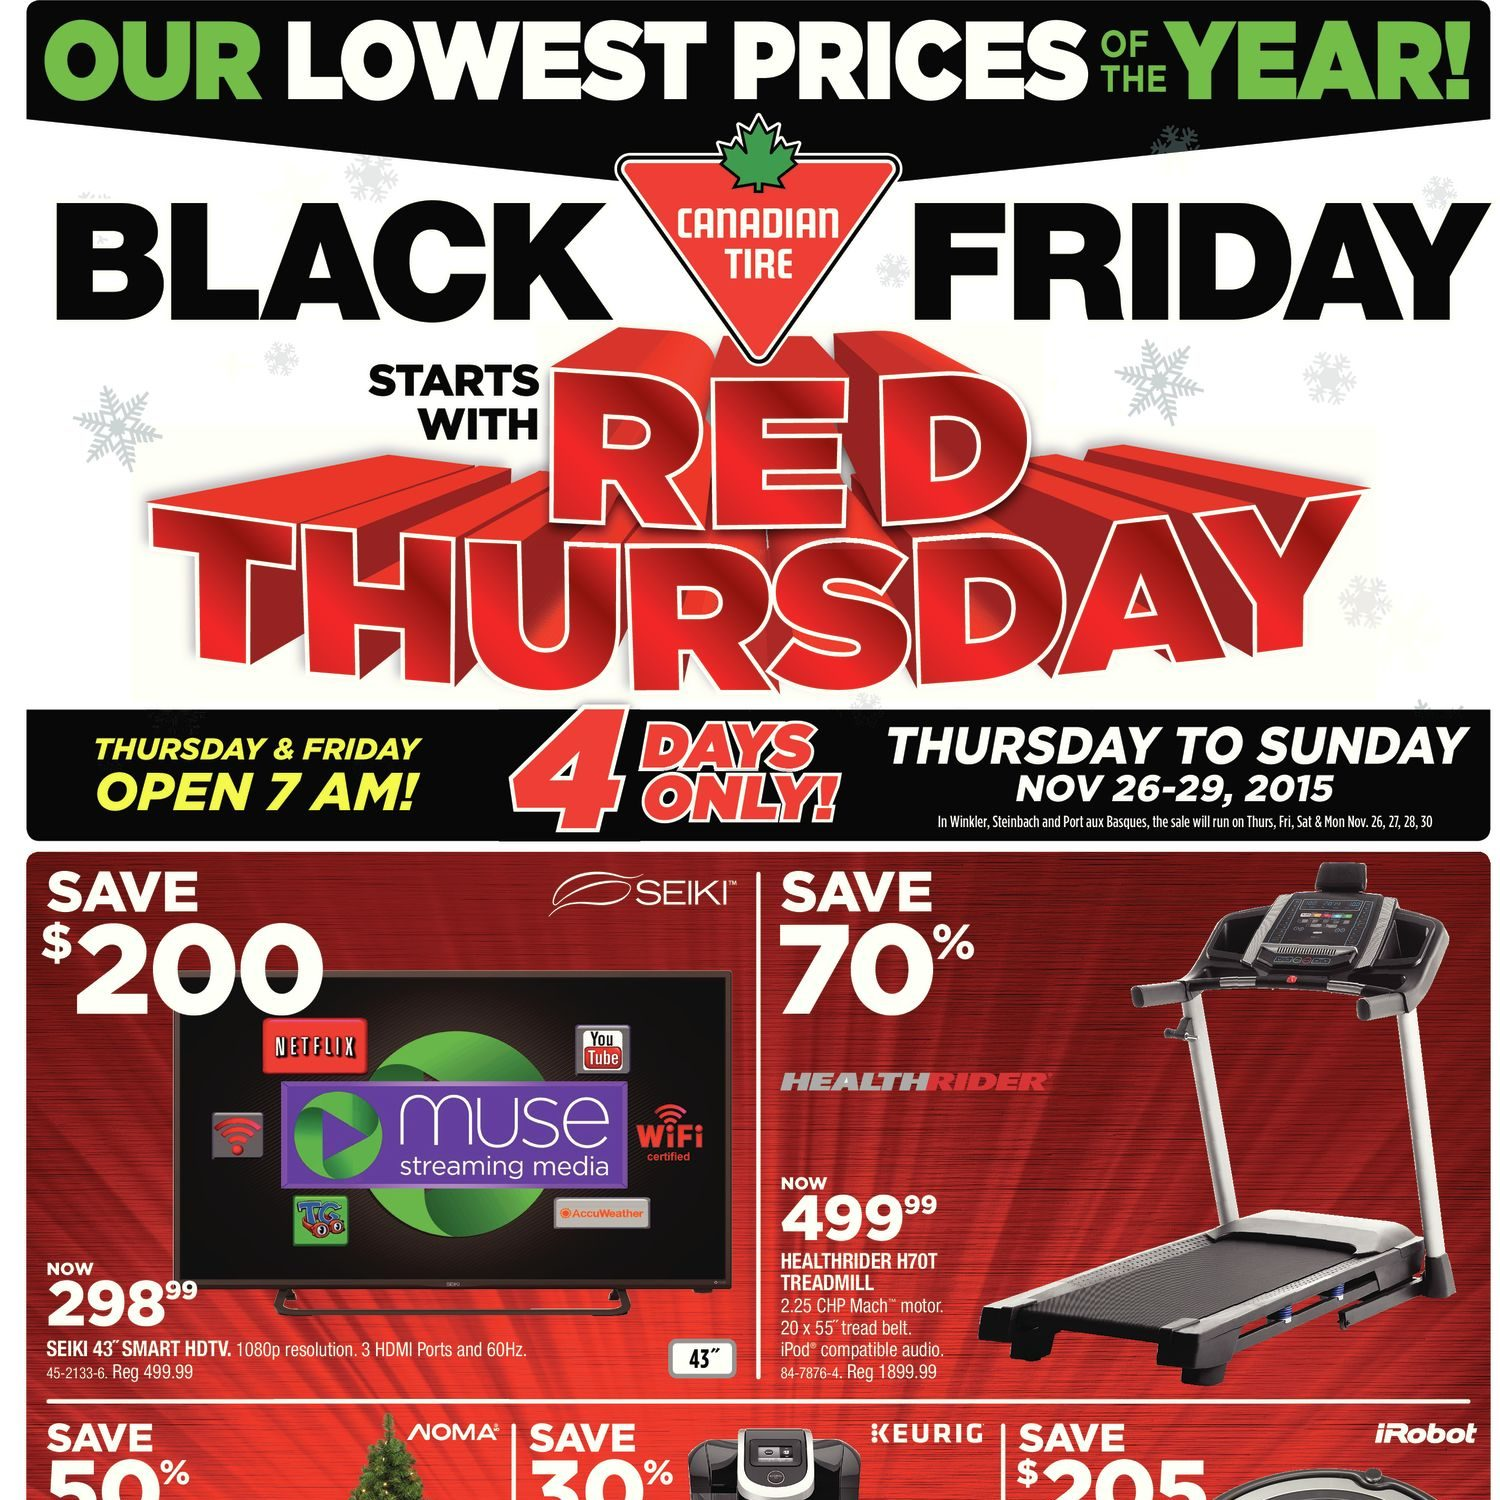 Canadian Tire Weekly Flyer Black Friday Starts With Red Thursday Nov 26 29 Redflagdeals Com